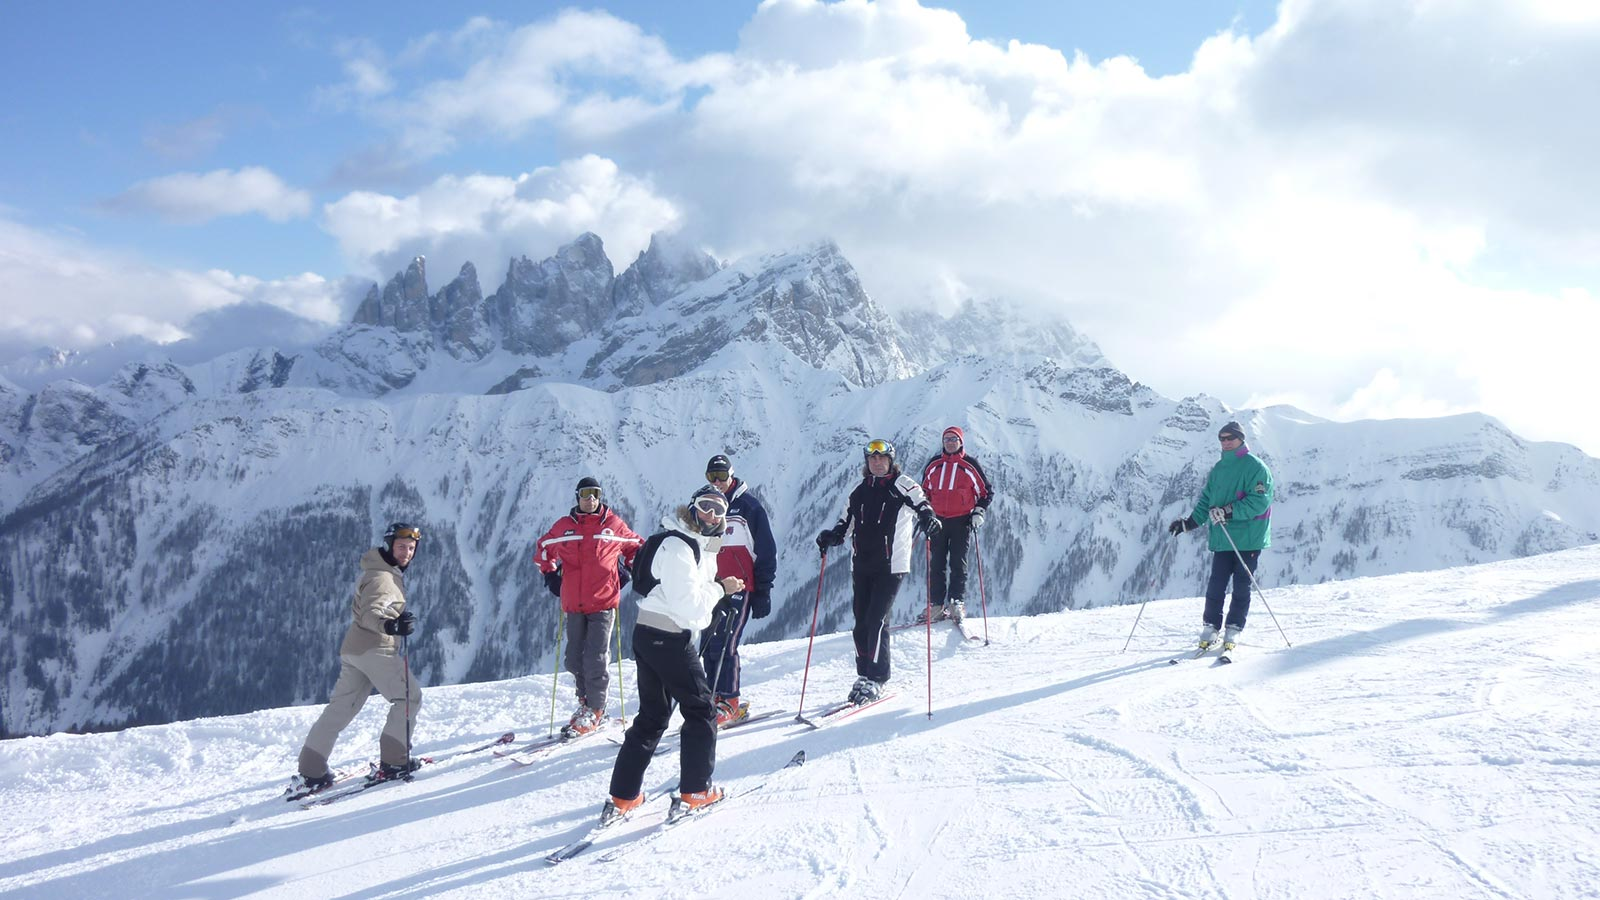 a group of skiers right before descending